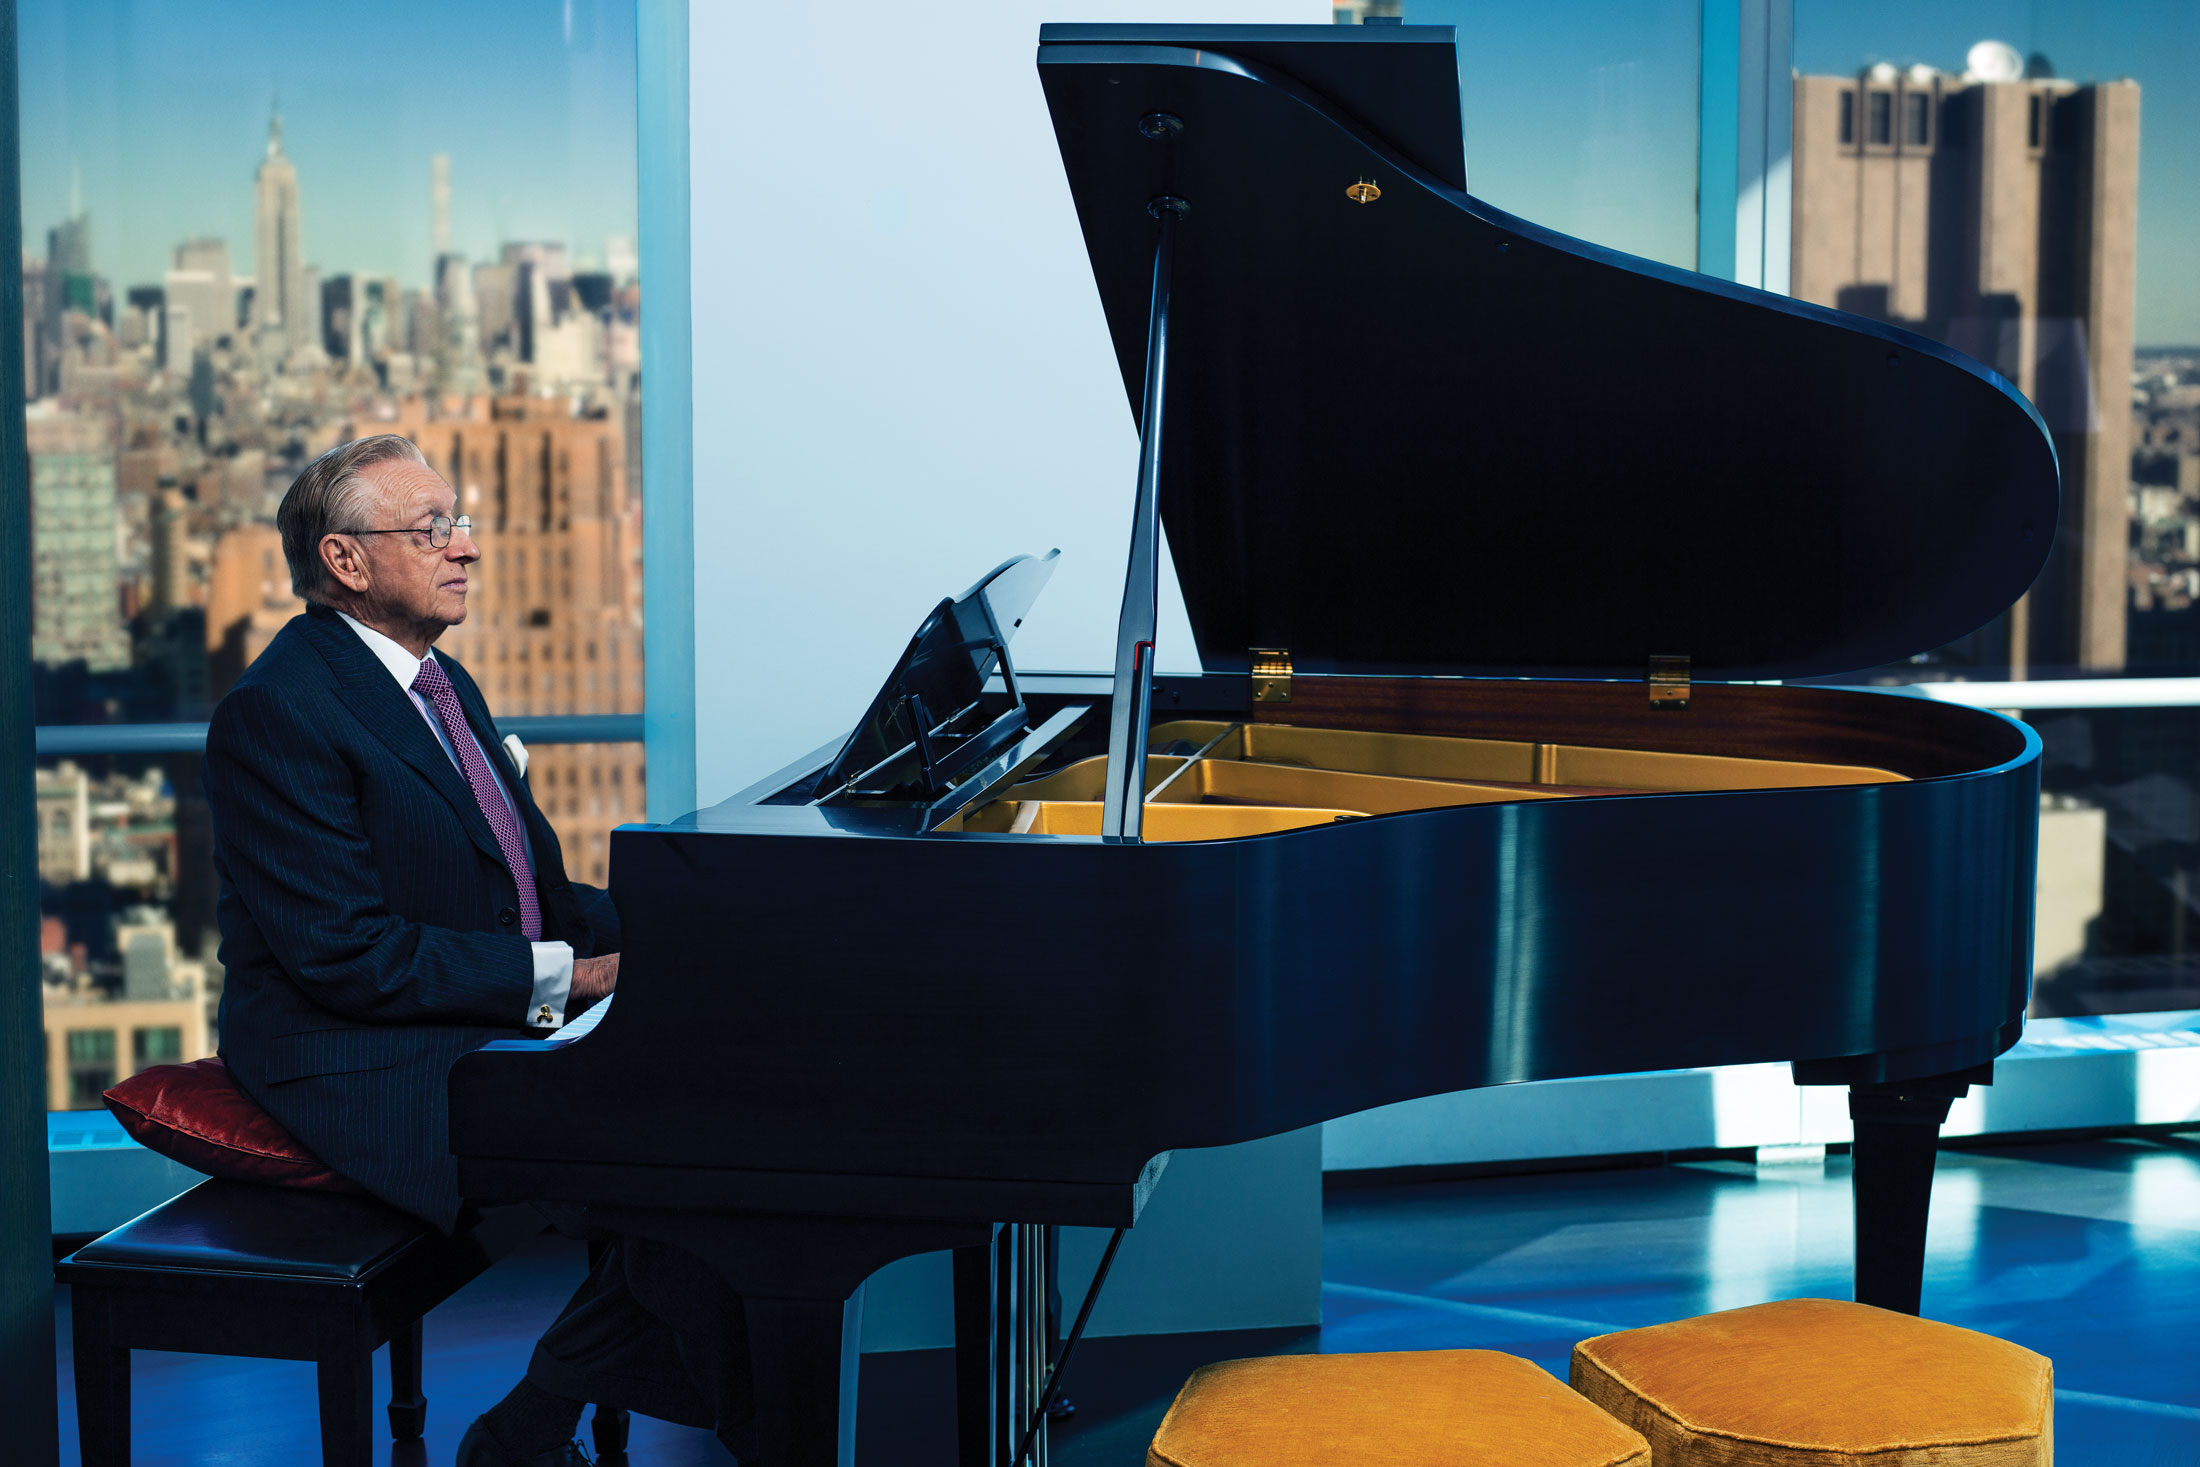 Silverstein playing the piano in his 7 World Trade Center office. (Photo: Ogata/Surface)